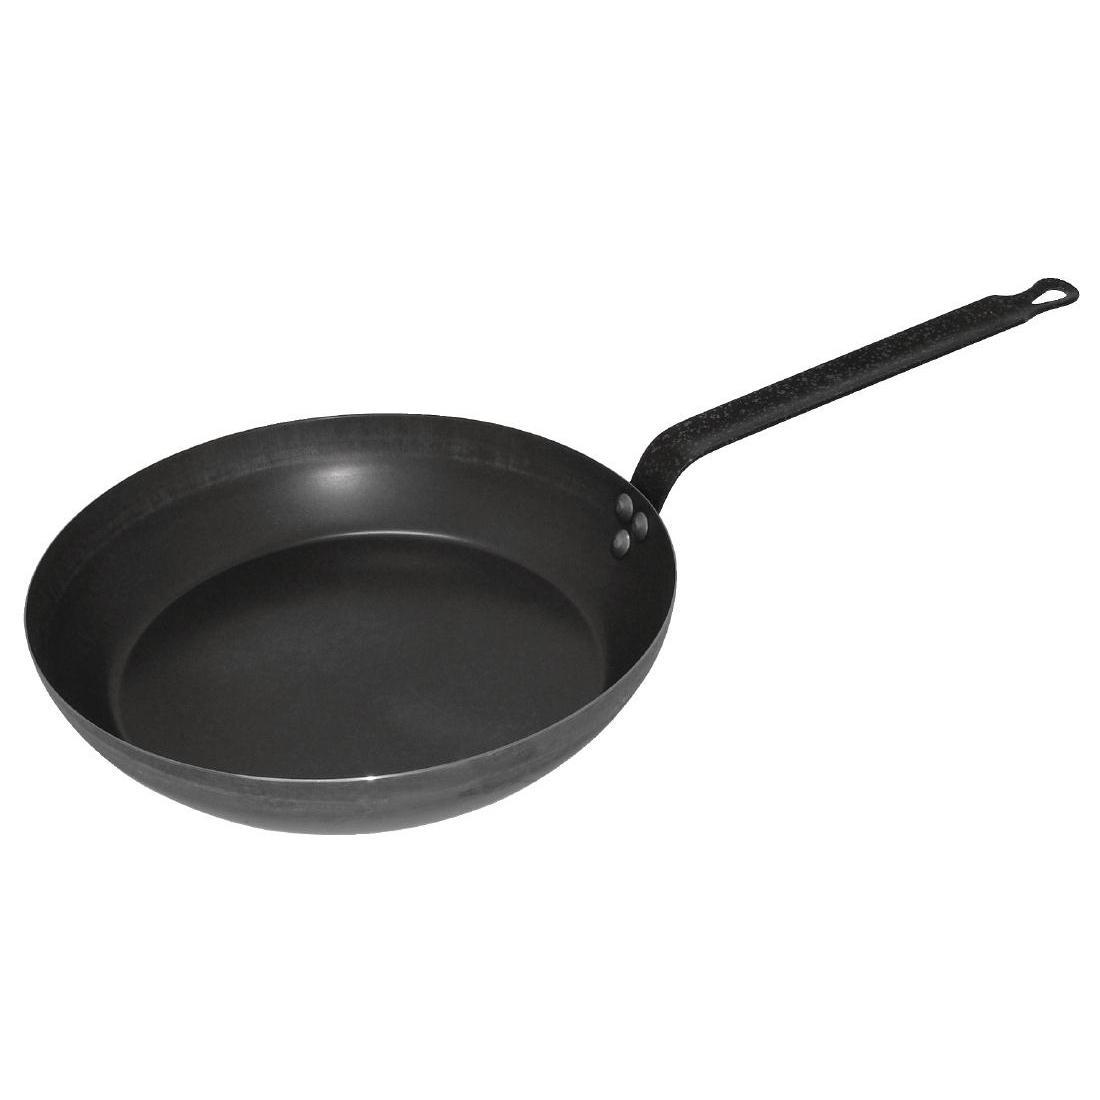 Vogue Black Iron Induction Frying Pan 350mm - Each - GD007